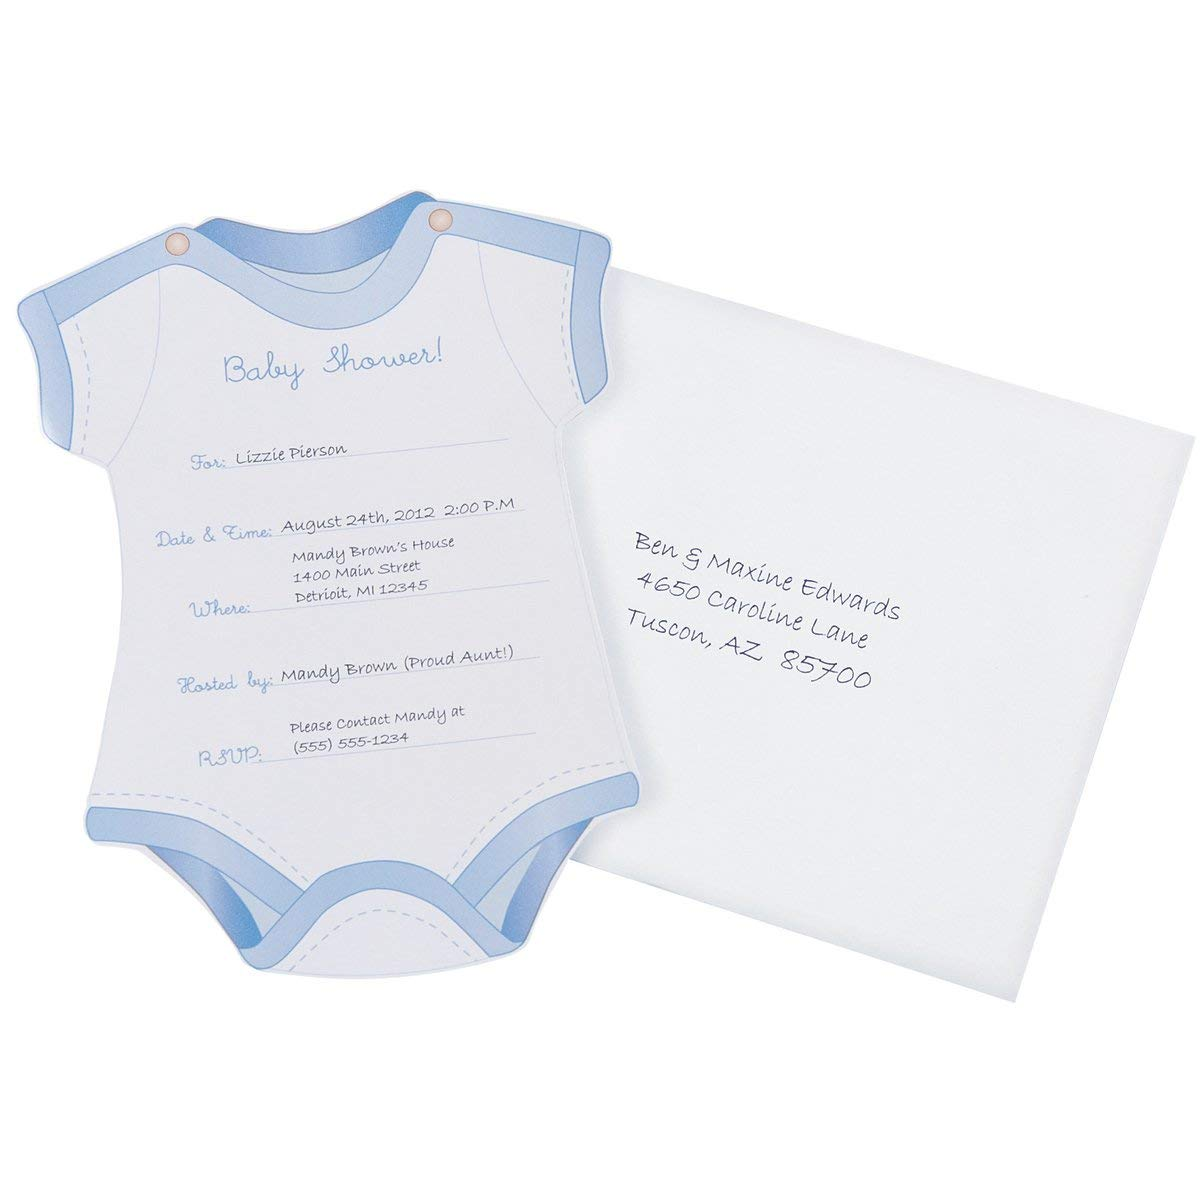 Full Size of Baby Shower:baby Shower Invitations For Boys Homemade Baby Shower Decorations Baby Shower Ideas Nursery Themes For Girls Baby Shower Favors Free Baby Shower Ideas Shower Invitations Baby Shower Decorations For Girls